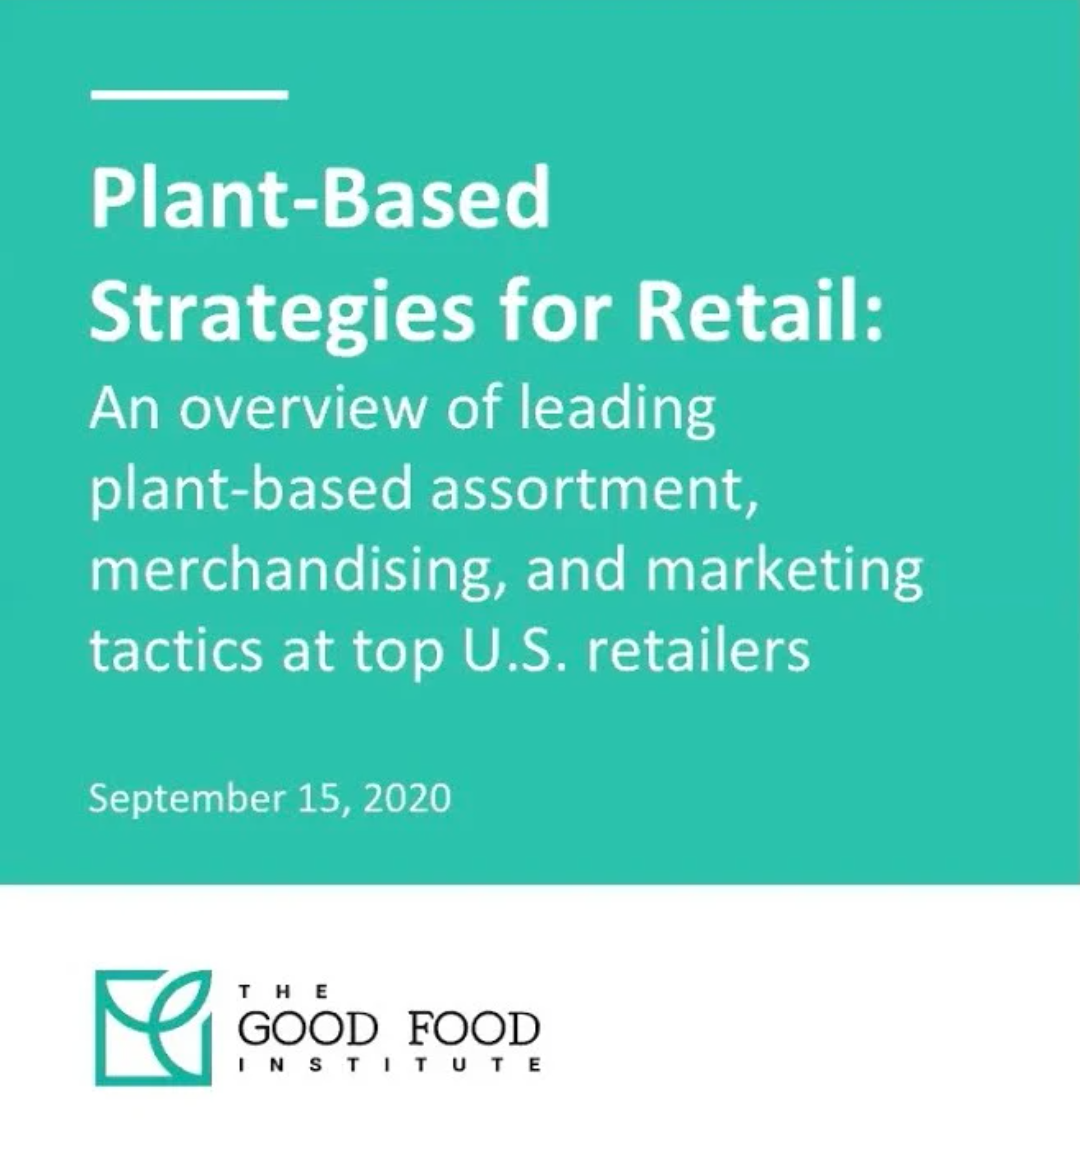 Screenshot from the plant-based strategies for retail webinar